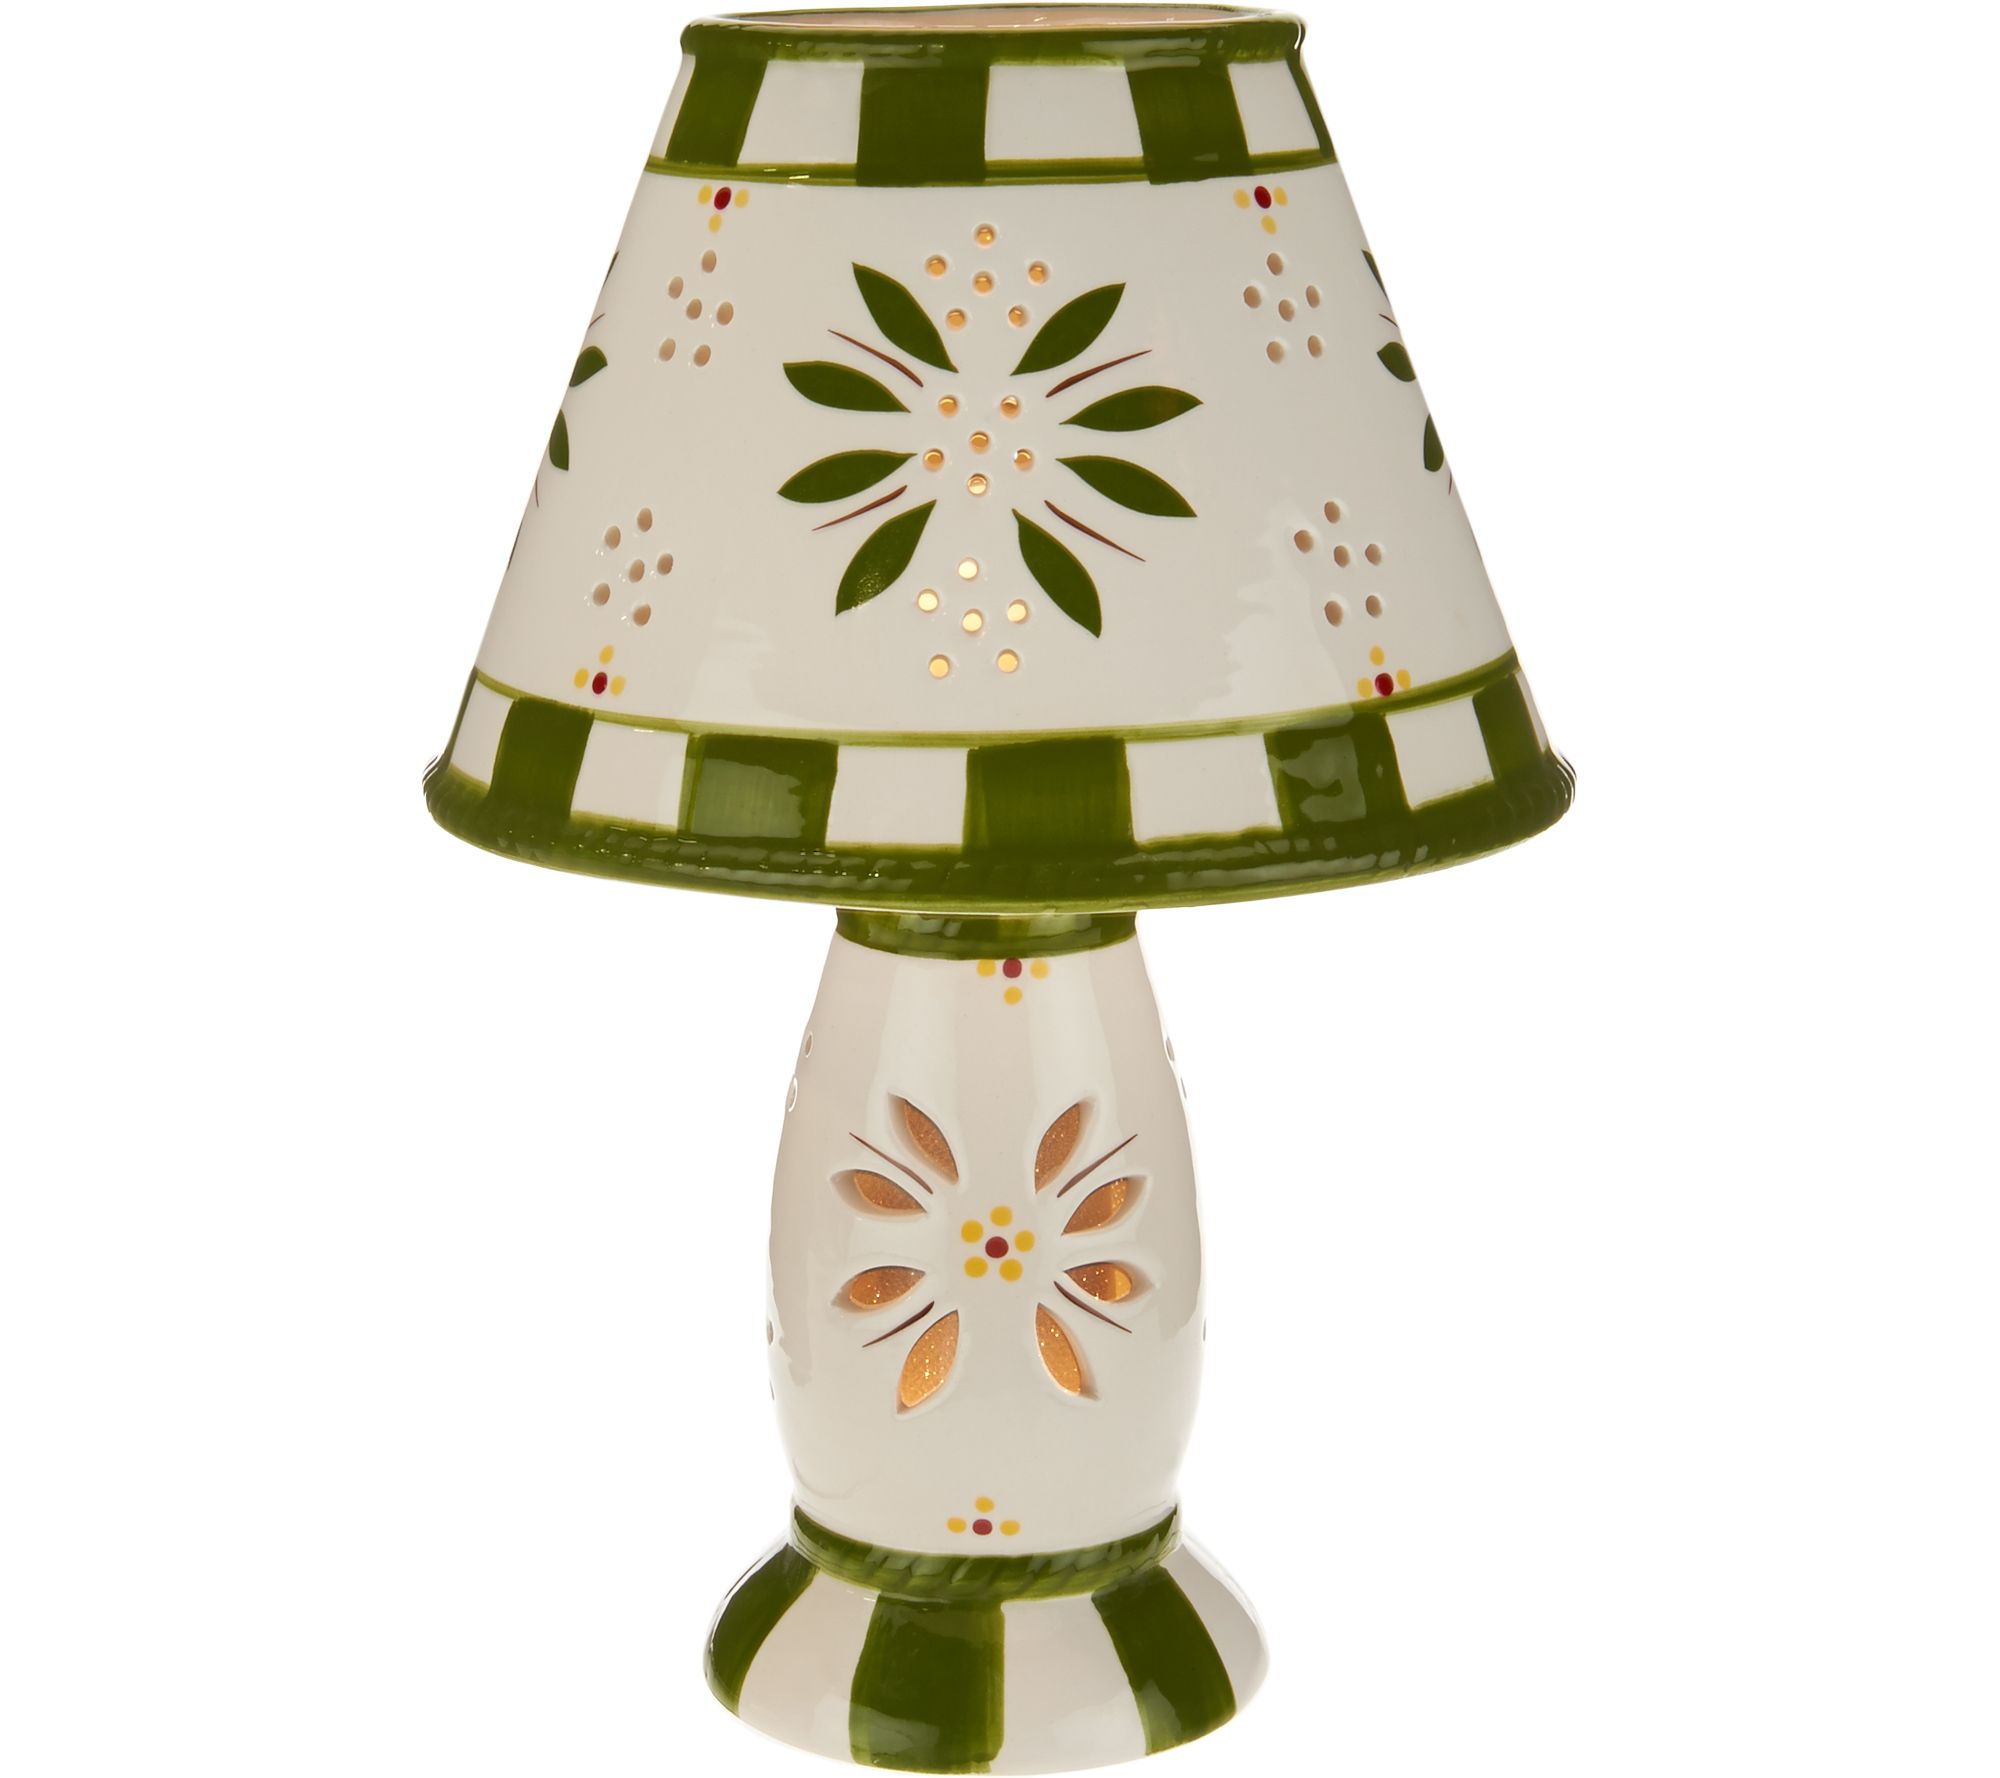 Temp tations 8 LED Battery Operated Old World Lamp Page 1 QVC